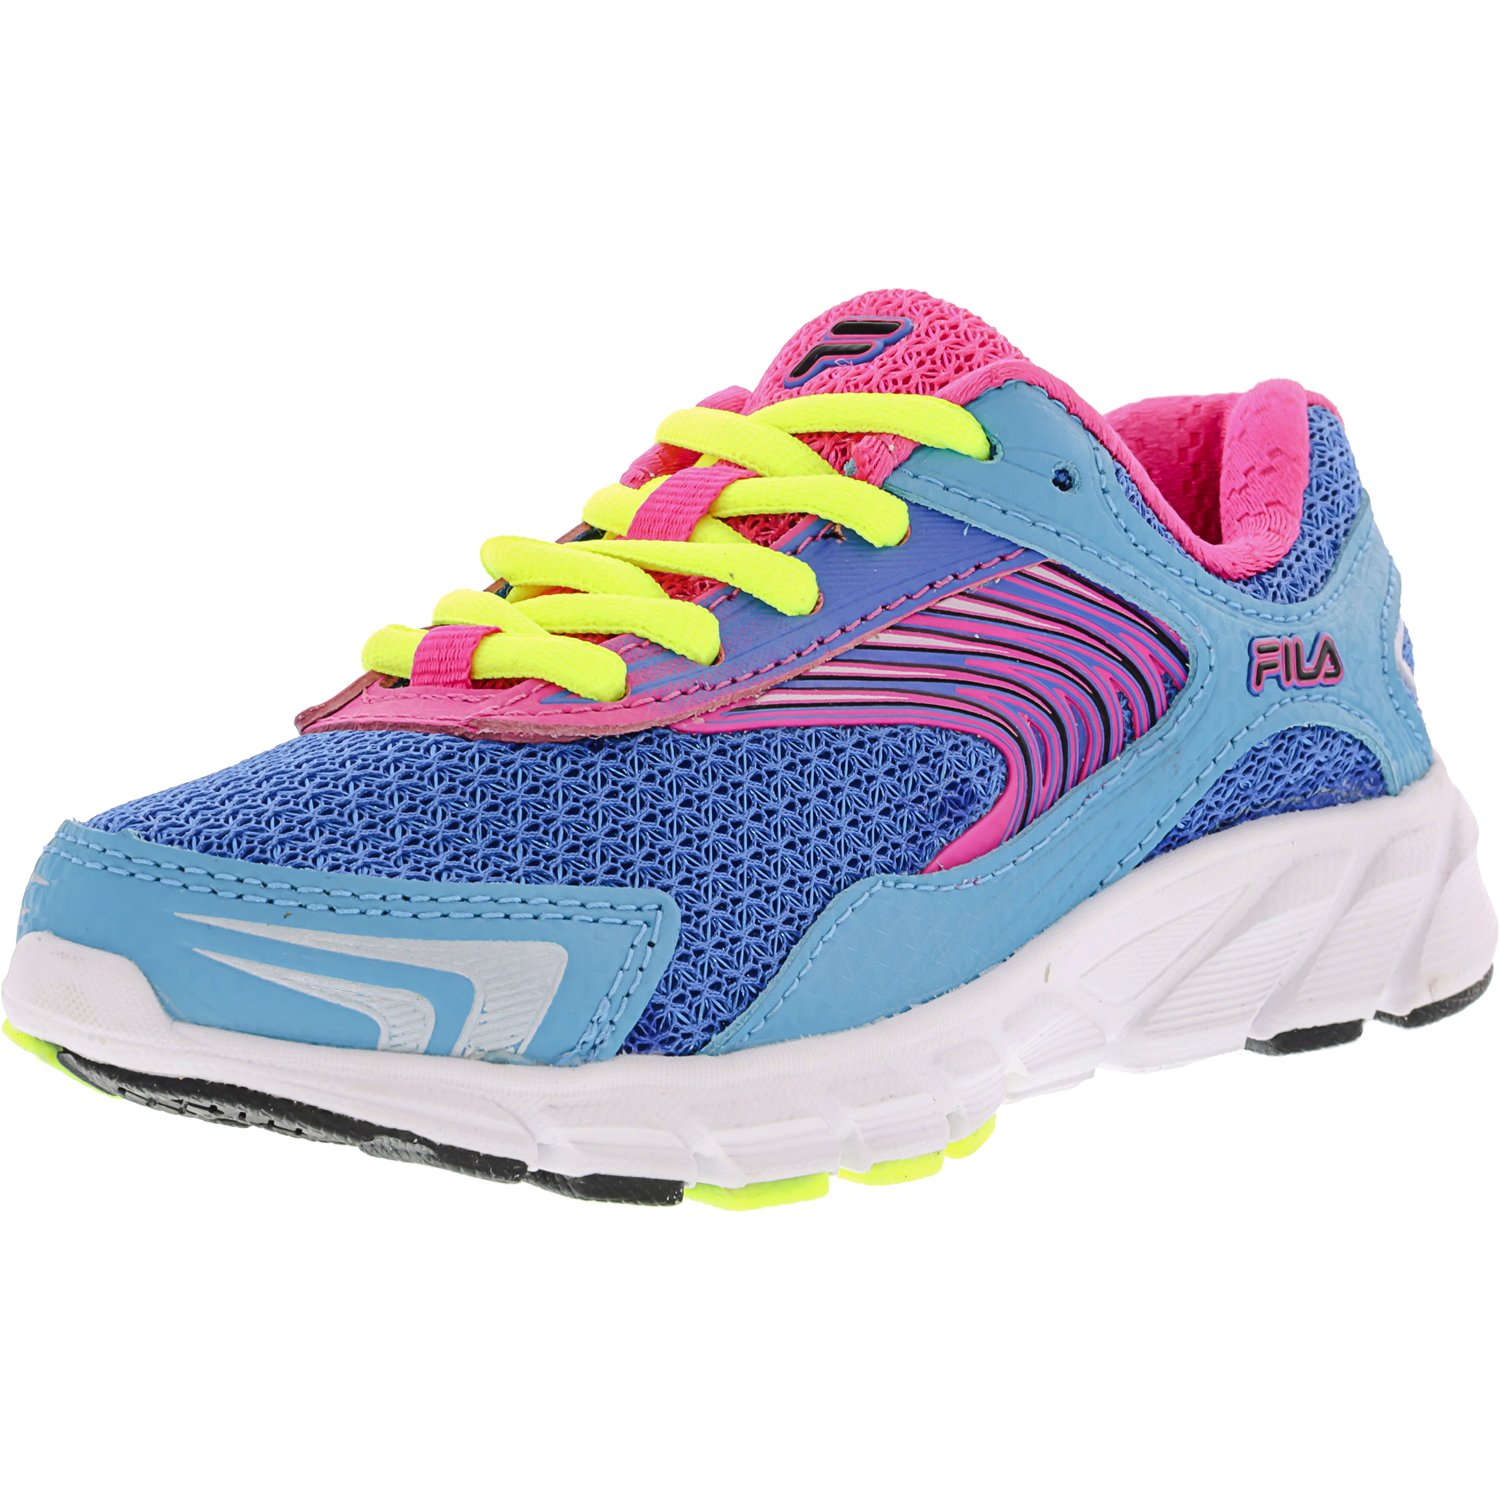 Fila Maranello 3 Electric Blue Lemonade   Atlantic Pink Glow Ankle-High Fashion Sneaker 13M by Fila